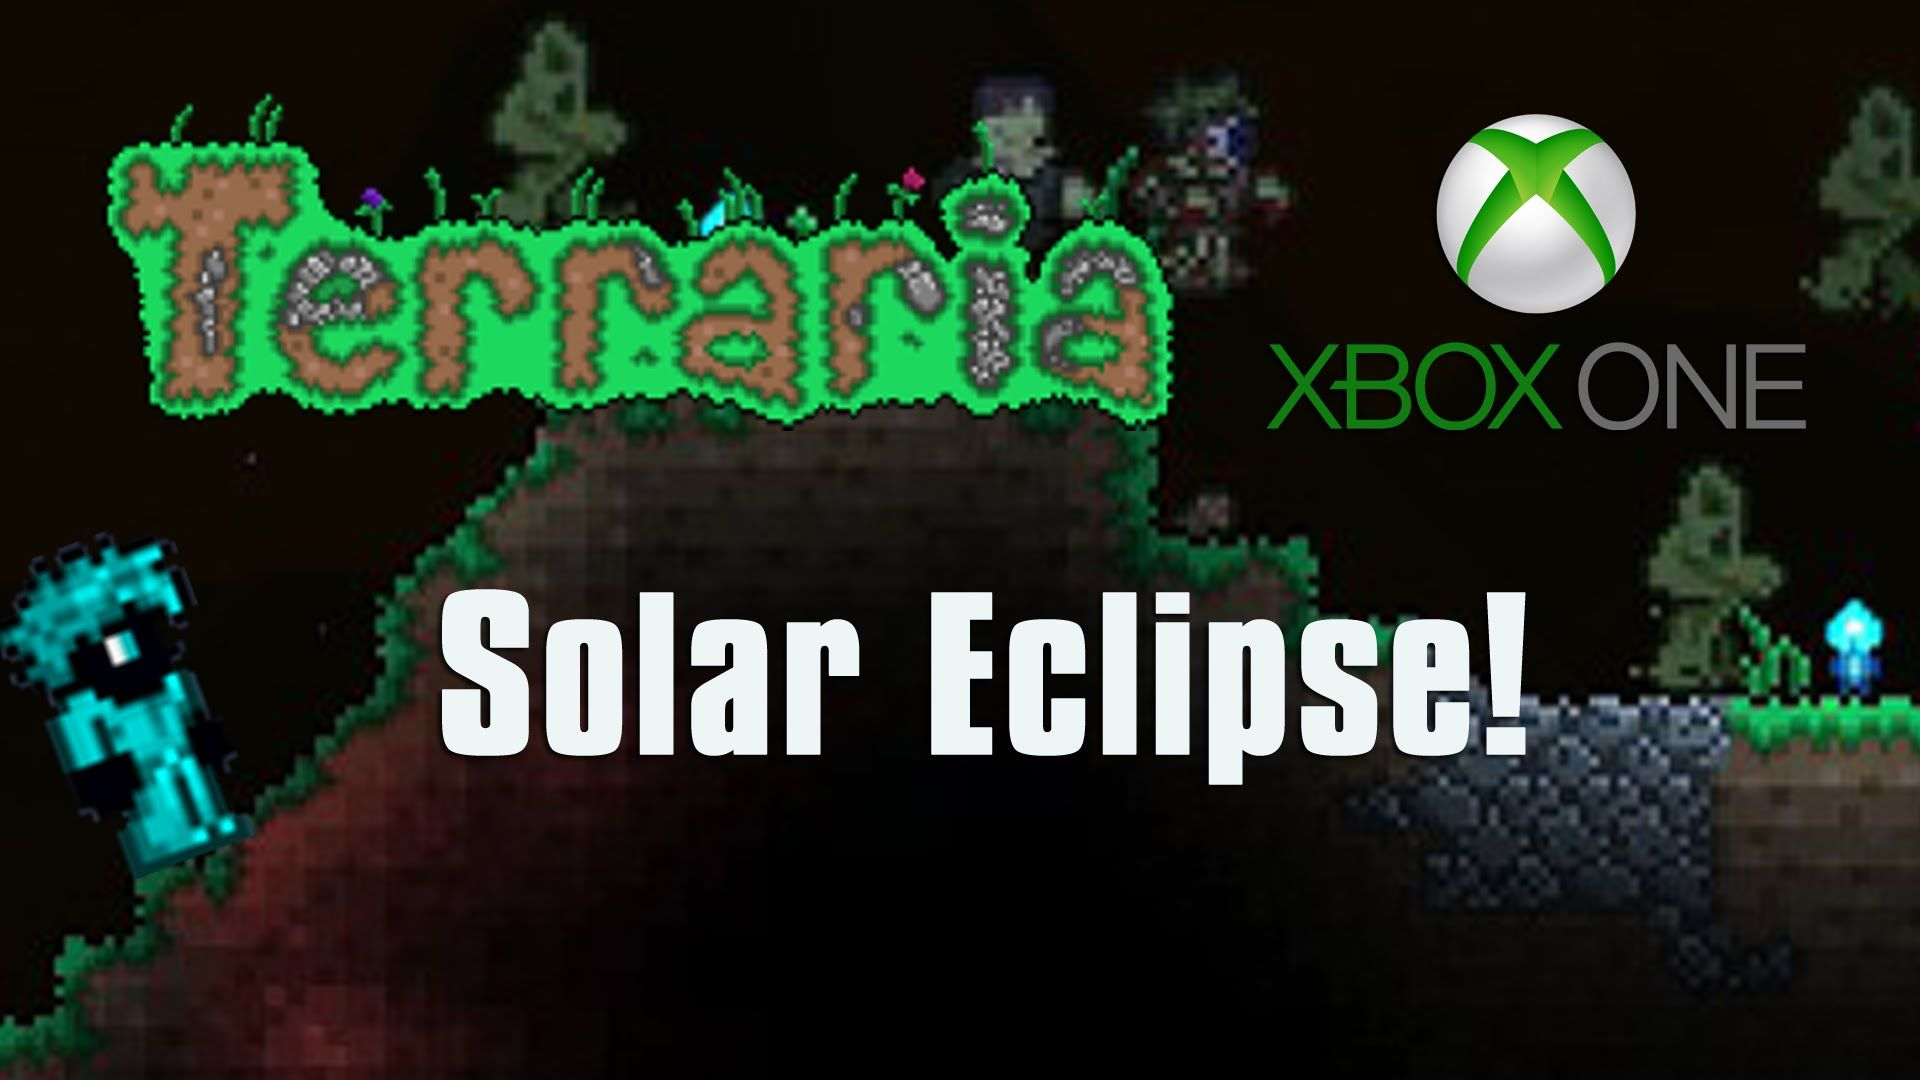 Terraria Xbox One Let S Play Solar Eclipse Epic Loot Farming Xbox One Let It Be Lets Play The solar eclipse has a chance to happen every day once 1 mechanical boss has been defeated. pinterest